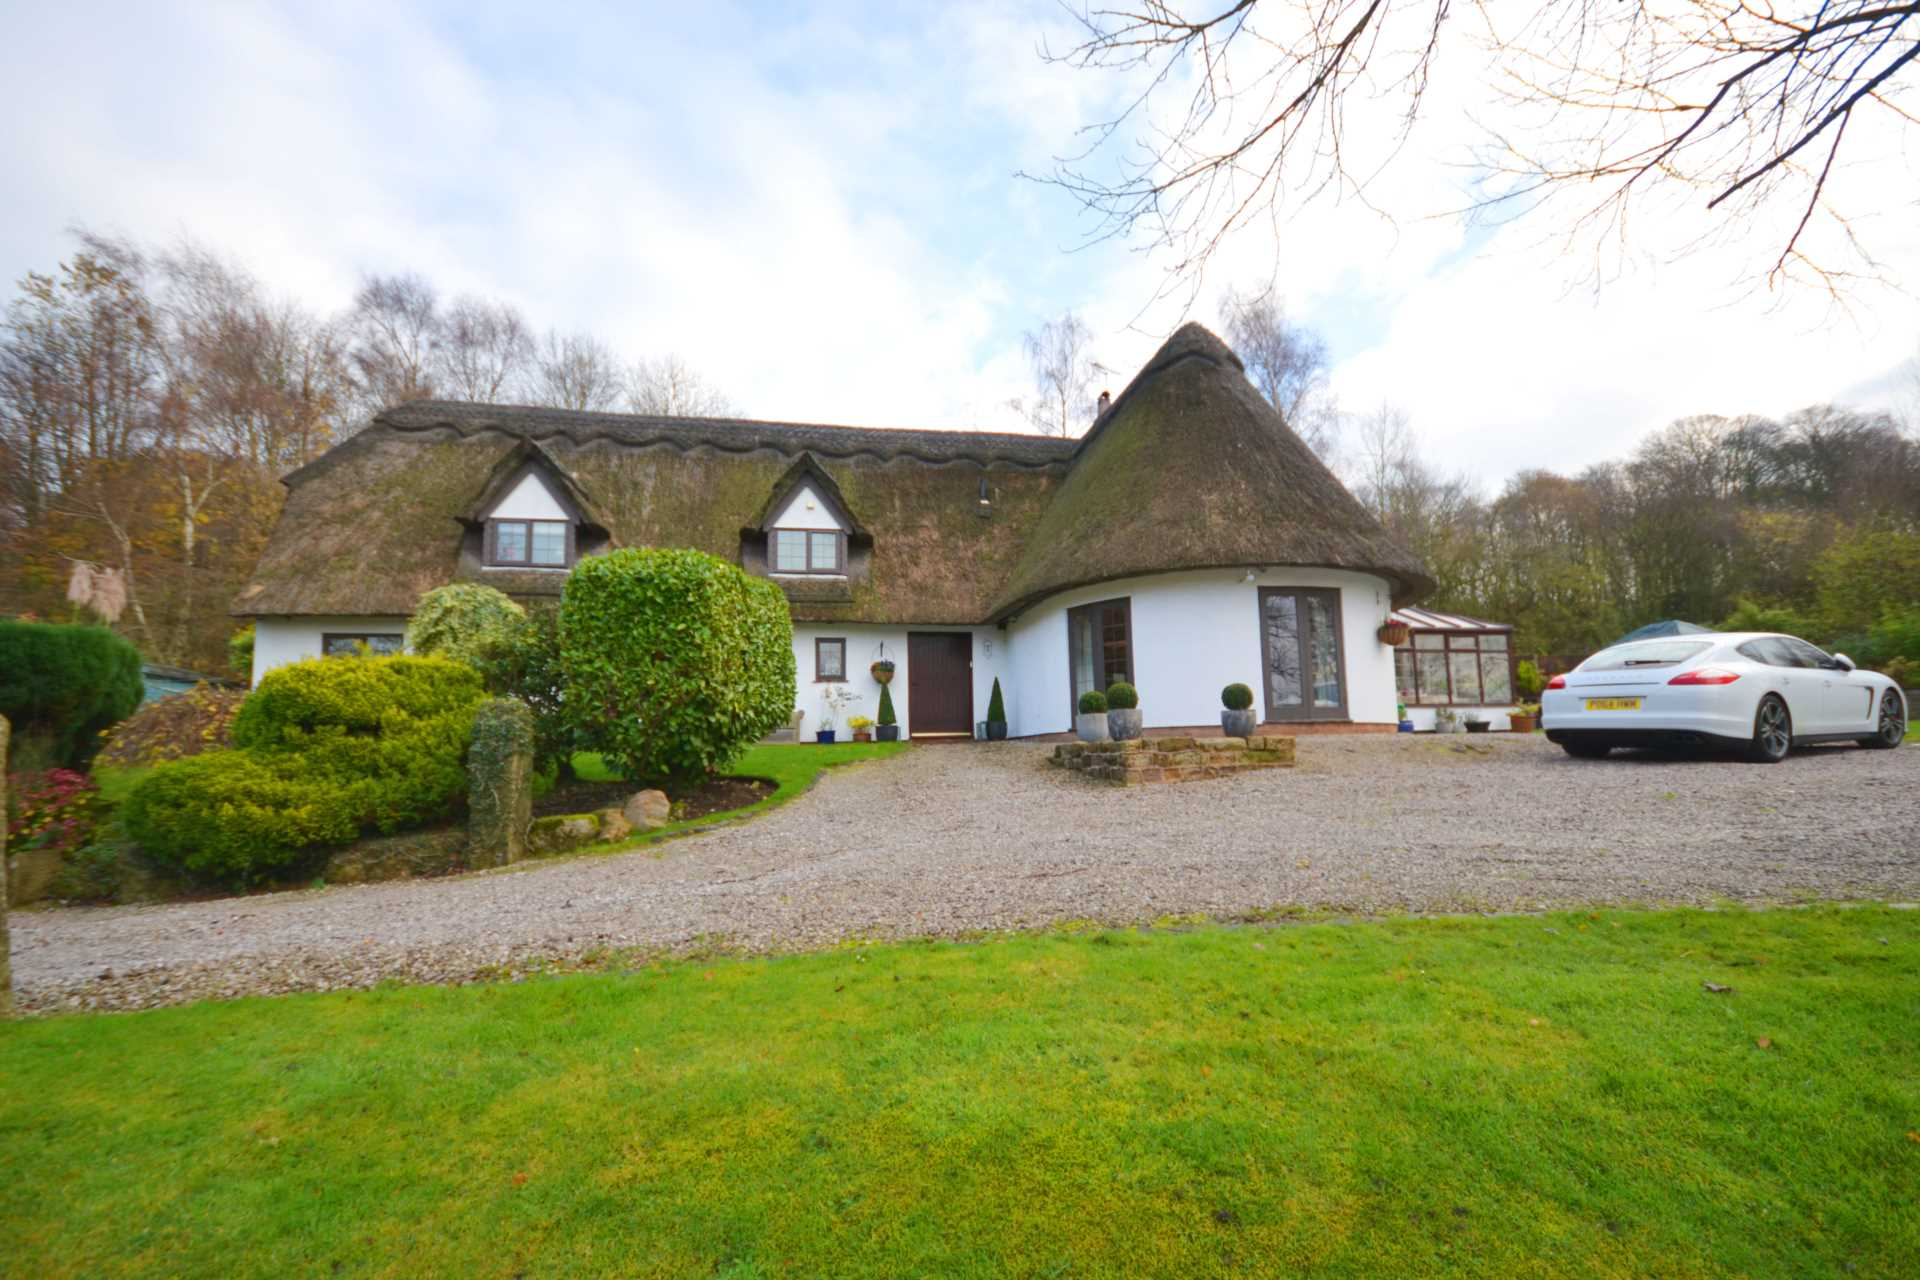 Redman Casey Estate Agency - 4 Bedroom Detached, Sheep Hill Brow, Clayton Le Woods